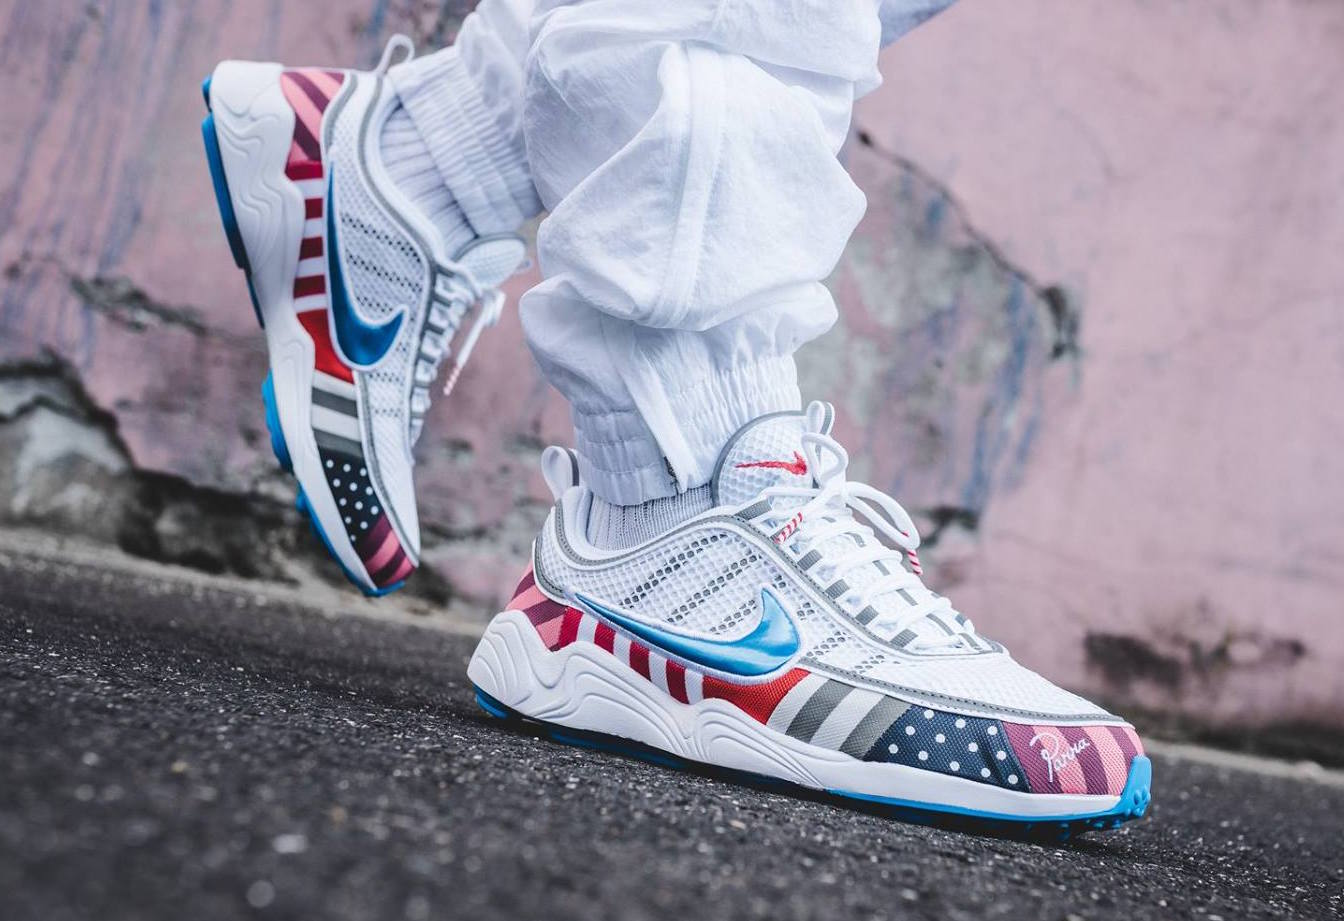 Get Ready For The Parra x Nike Air Zoom Spiridon